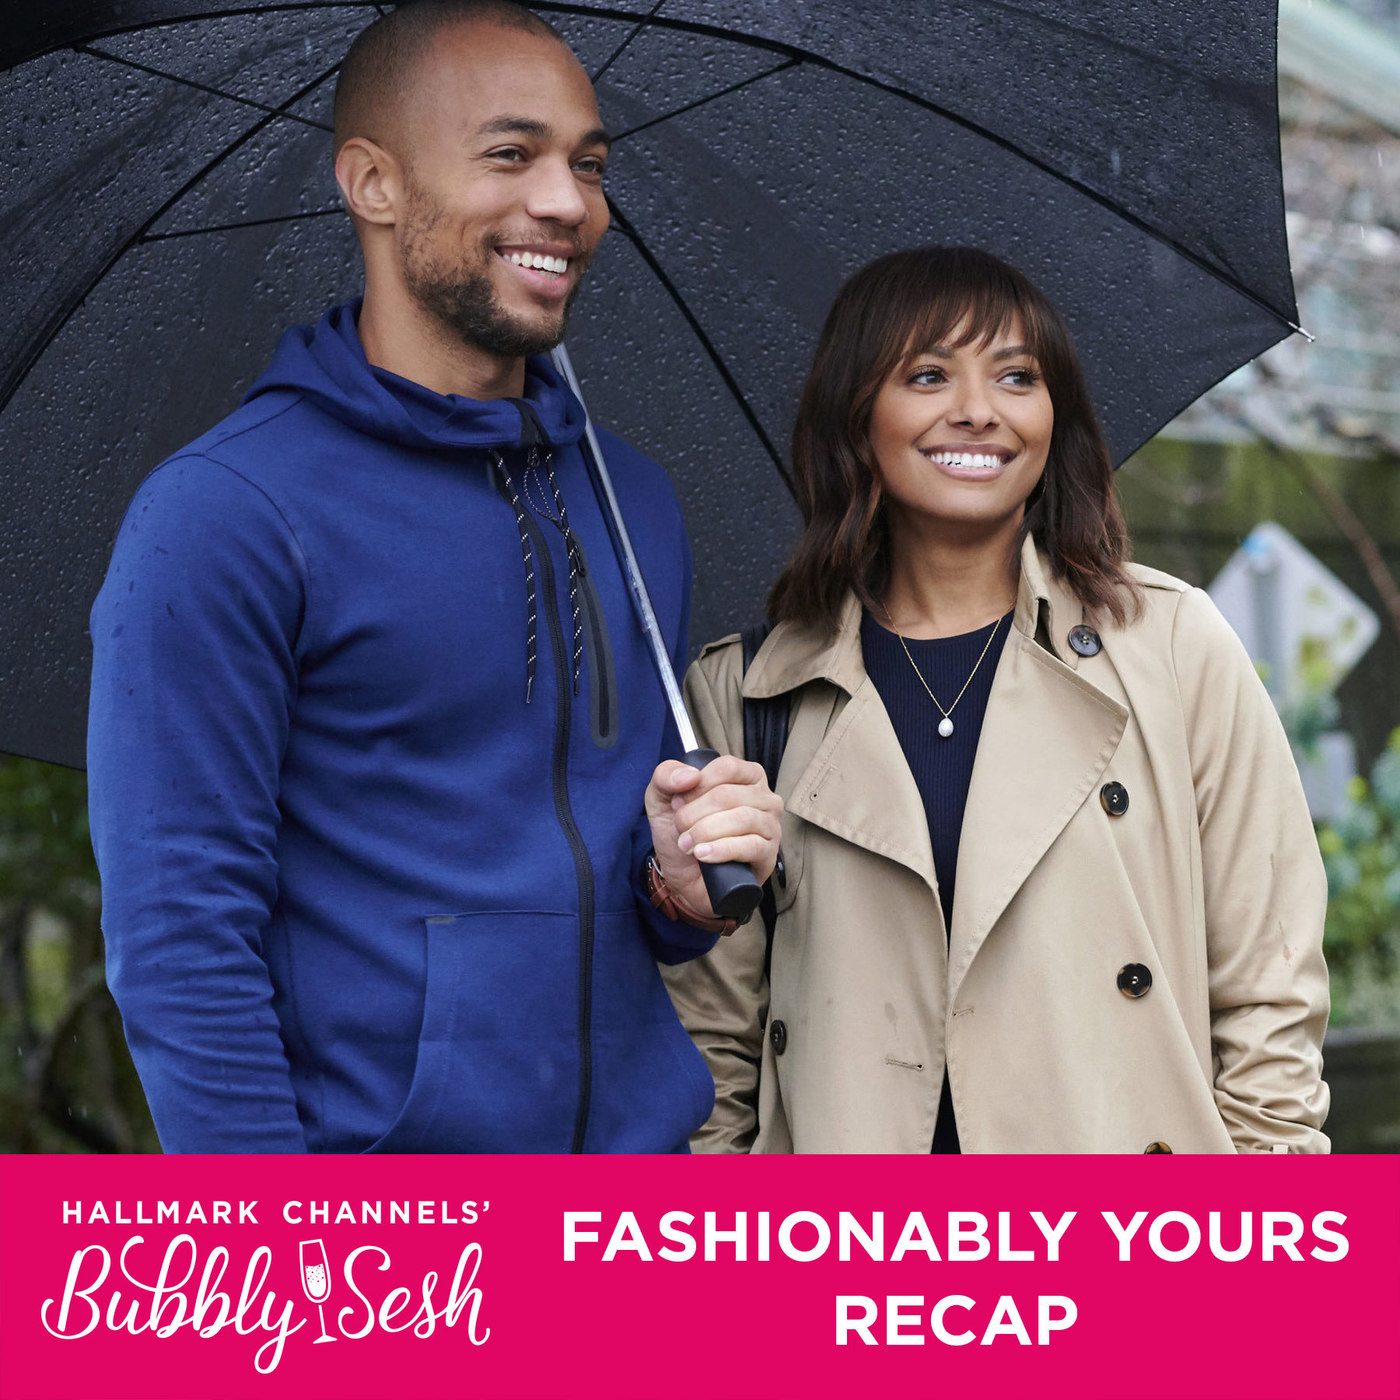 Fashionably Yours Recap